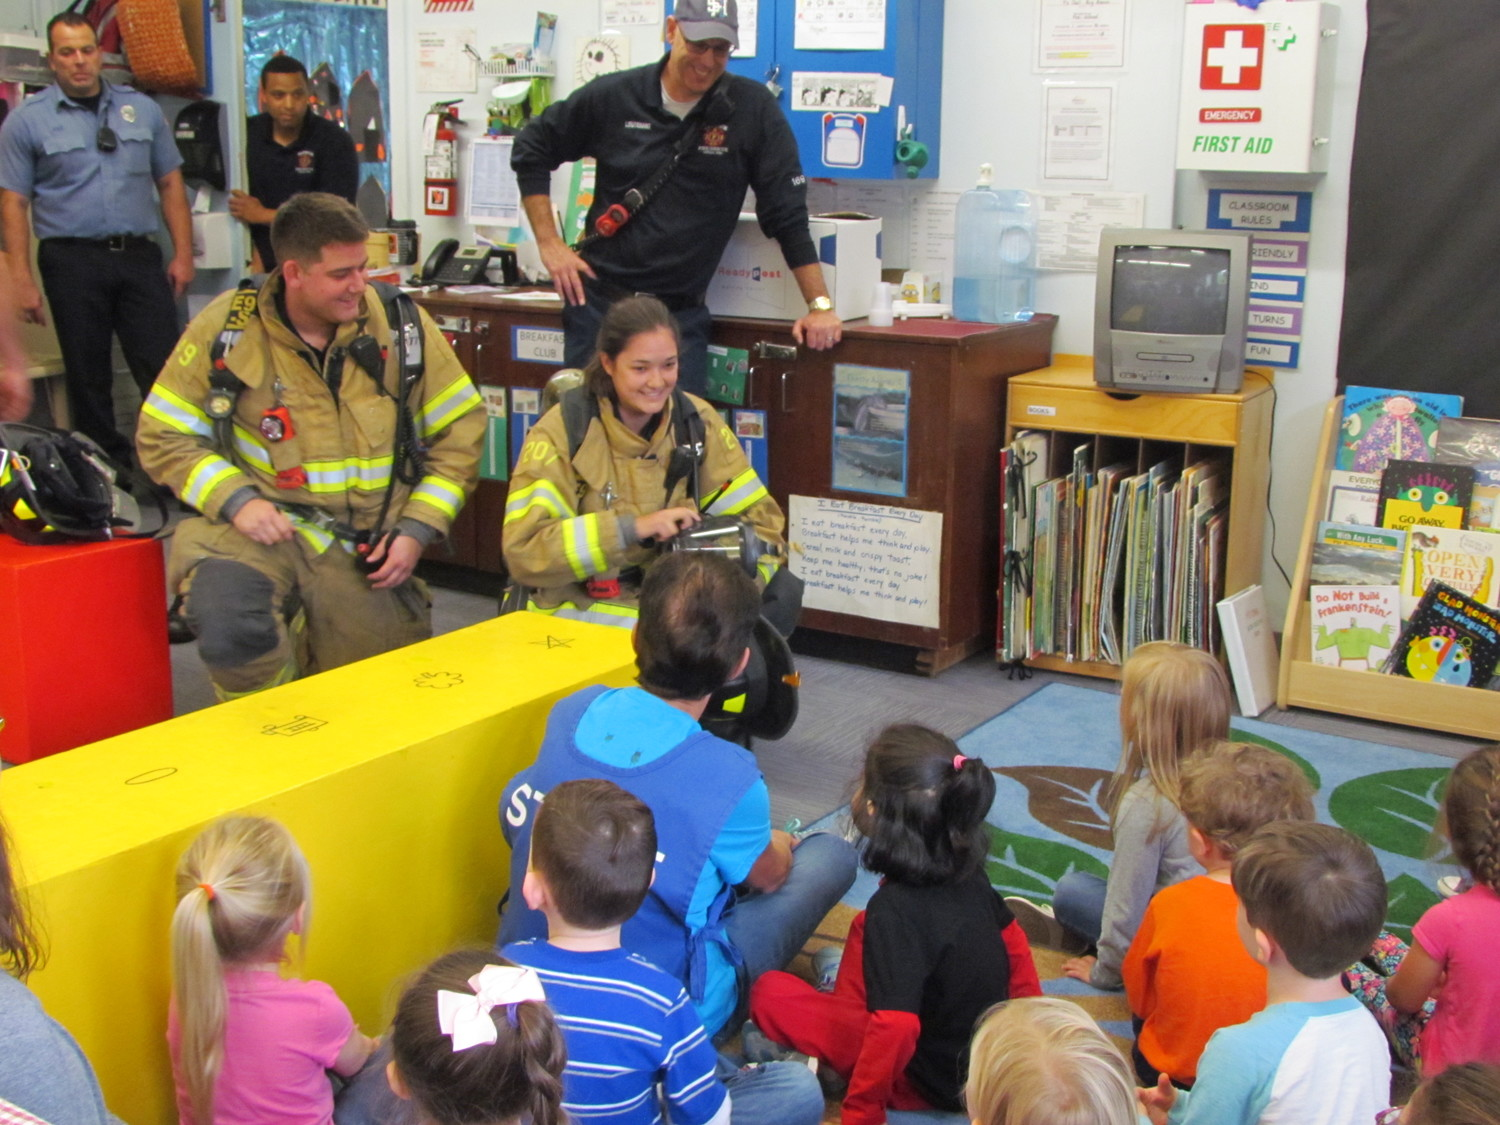 GEARED UP TO BE SAFE: Firefighters Andrew Kazarian and Victoria Bellavance show their gear to the Y's Owl Nursery School students.